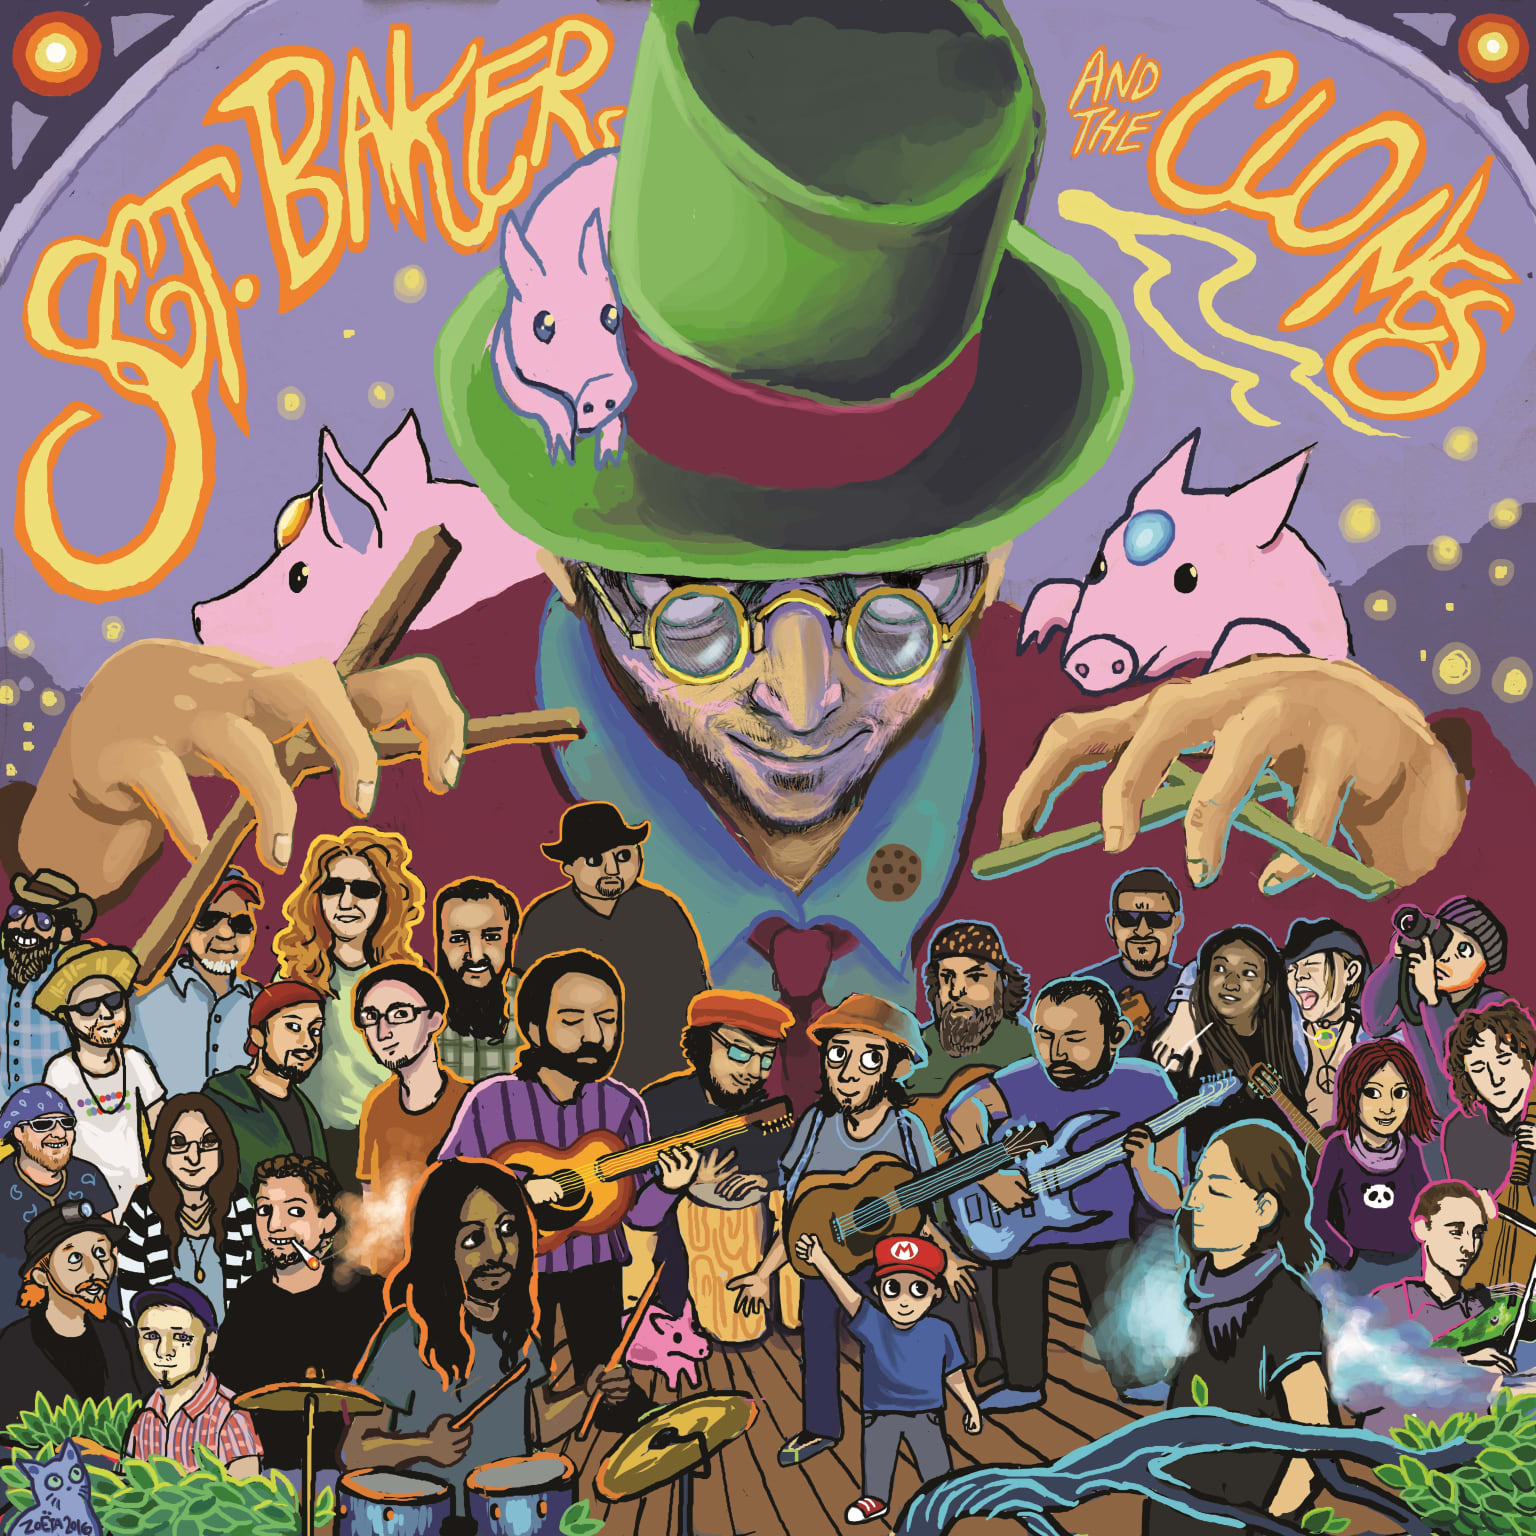 Sgt. Baker and the Clones Album Cover